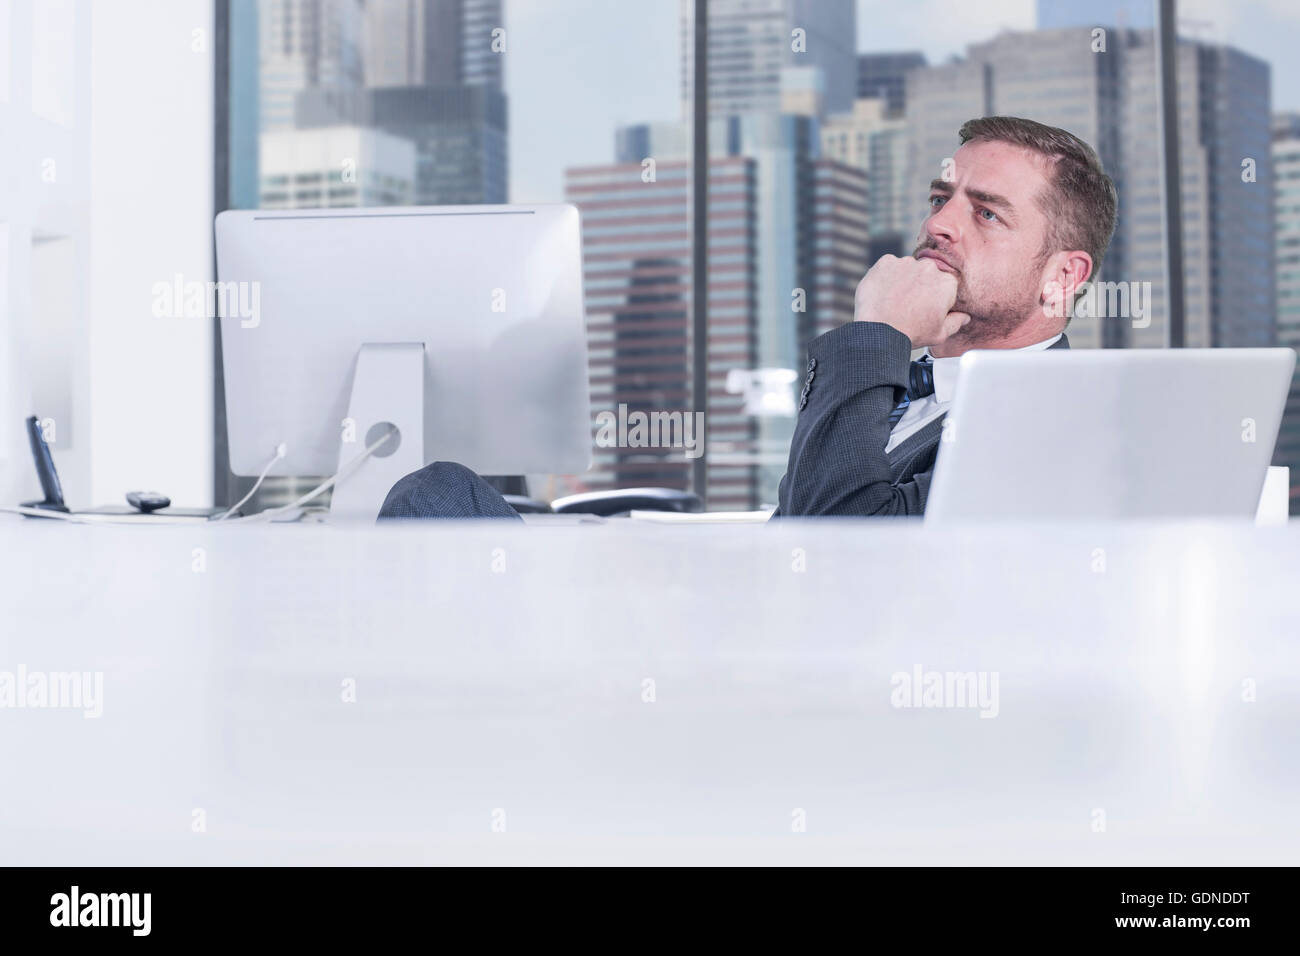 Businessman contemplating in front of computer - Stock Image